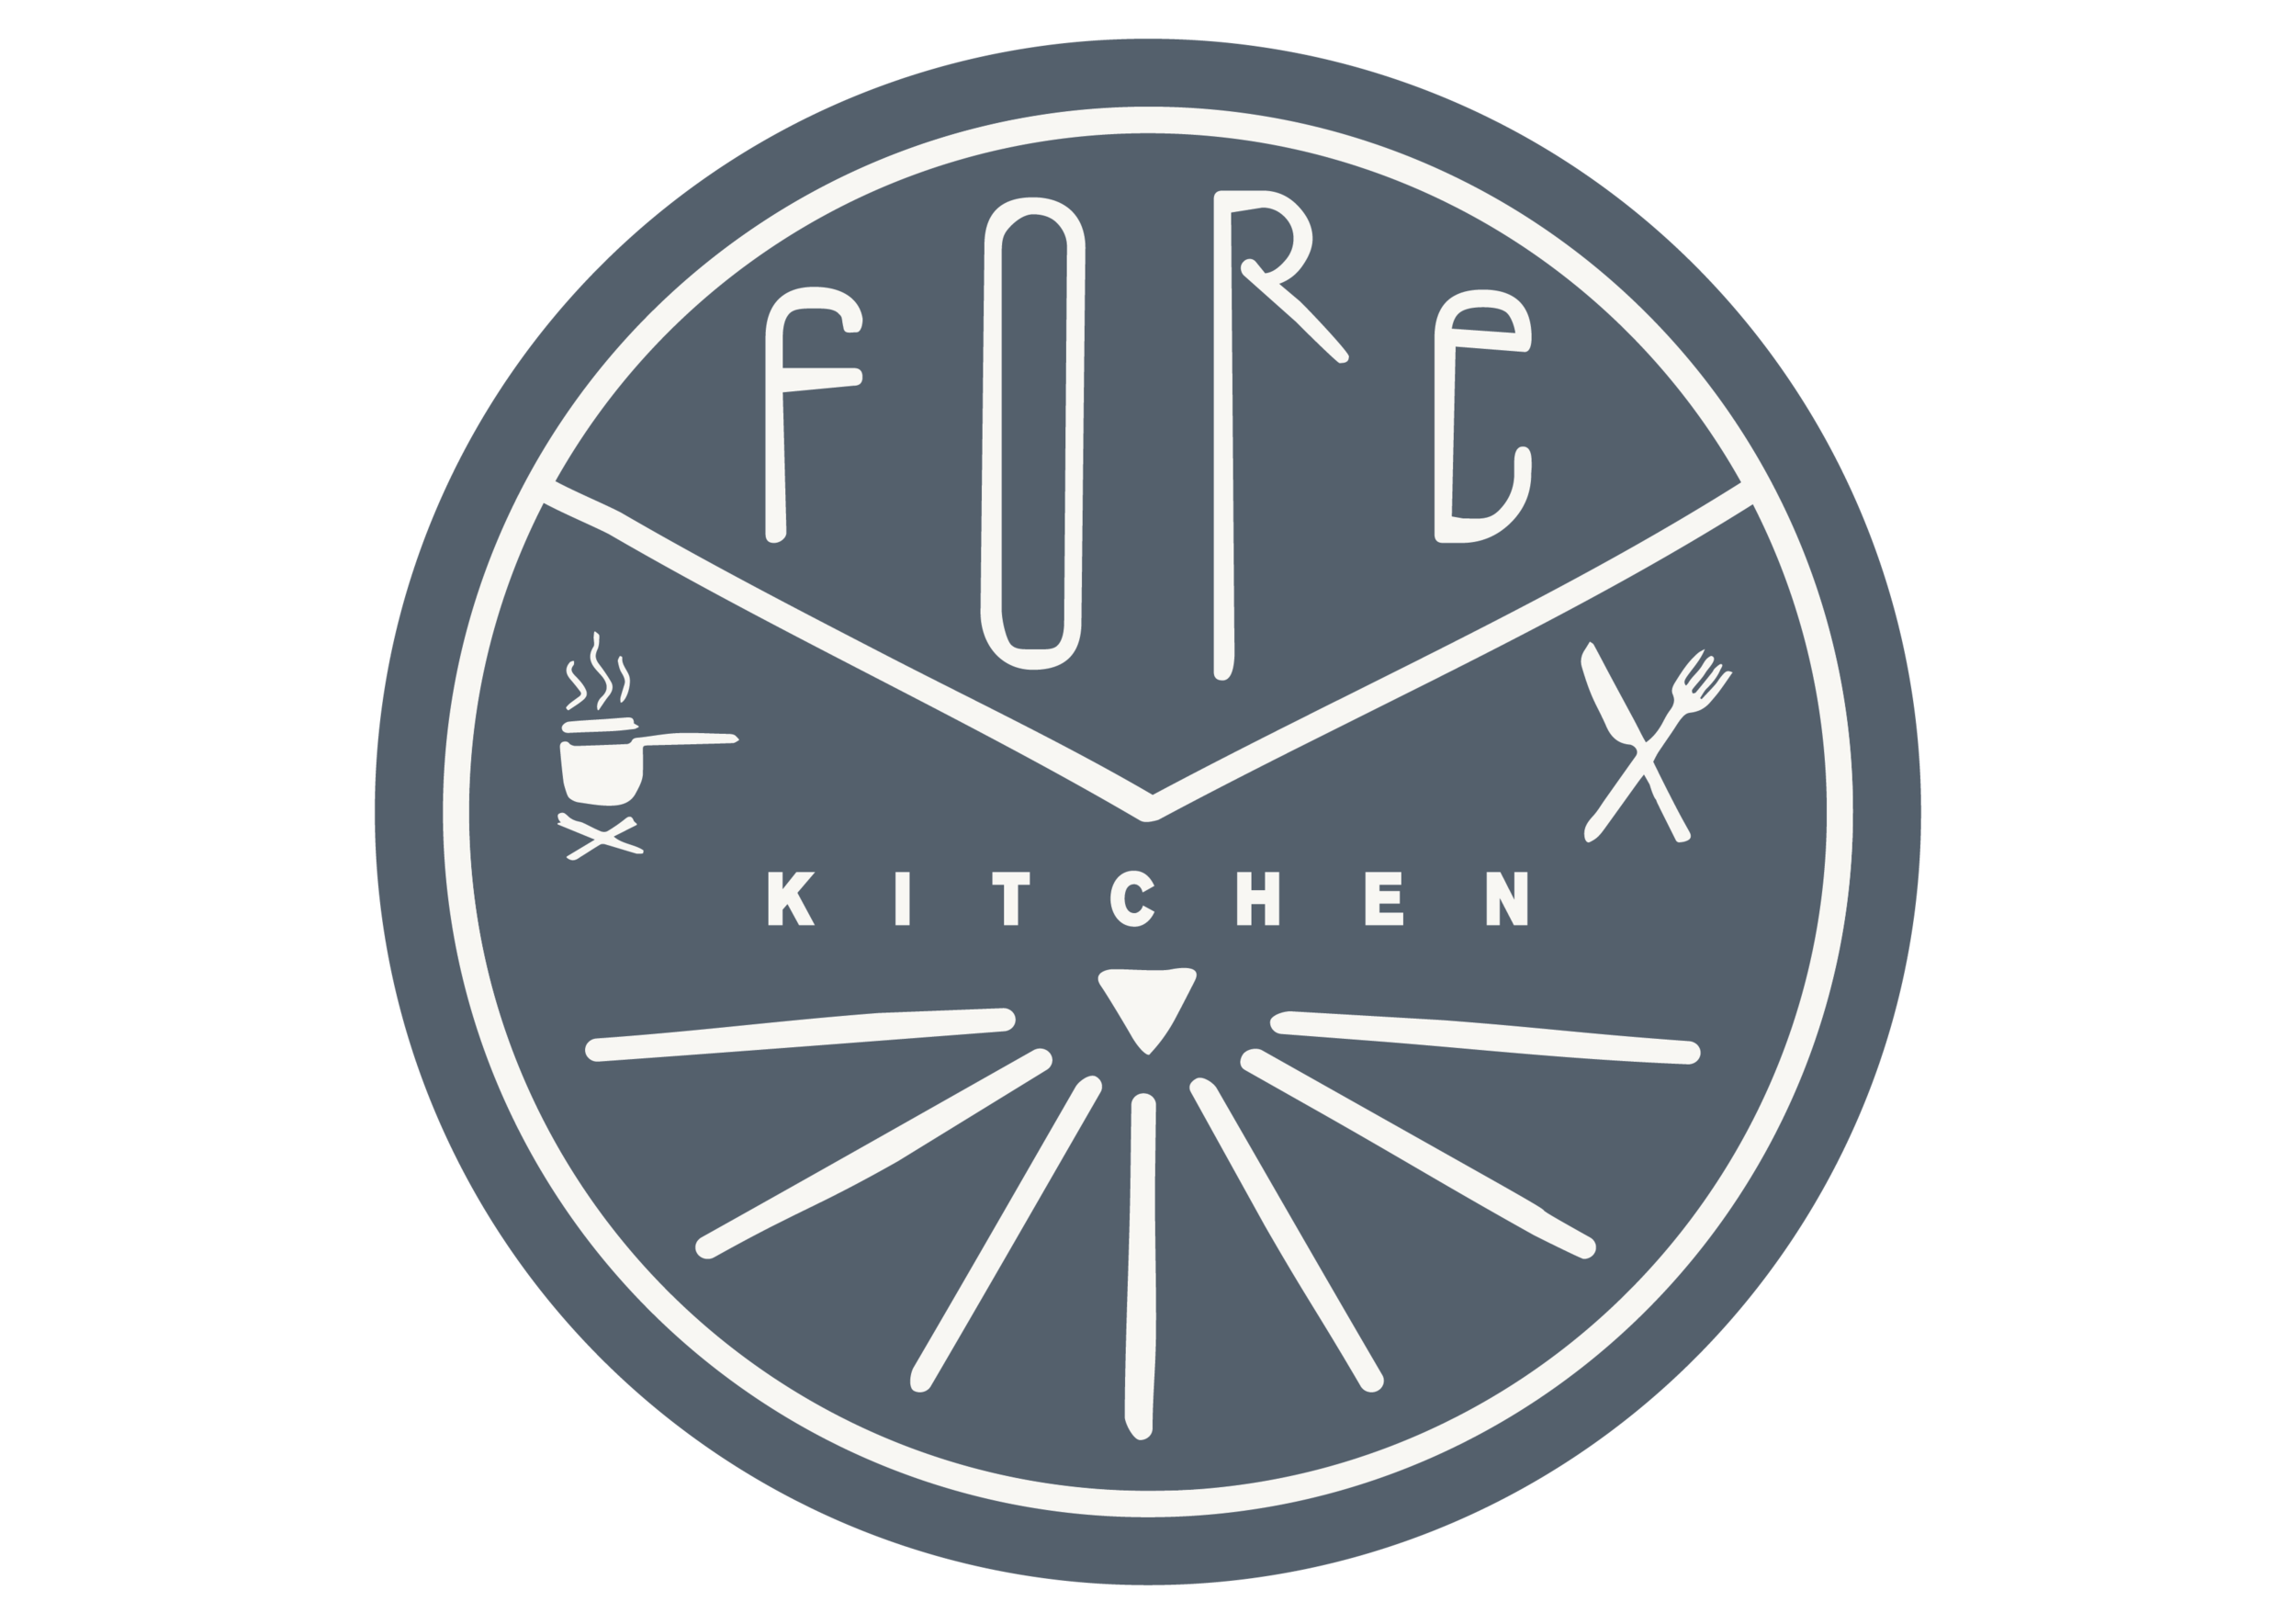 Fore / Kitchen